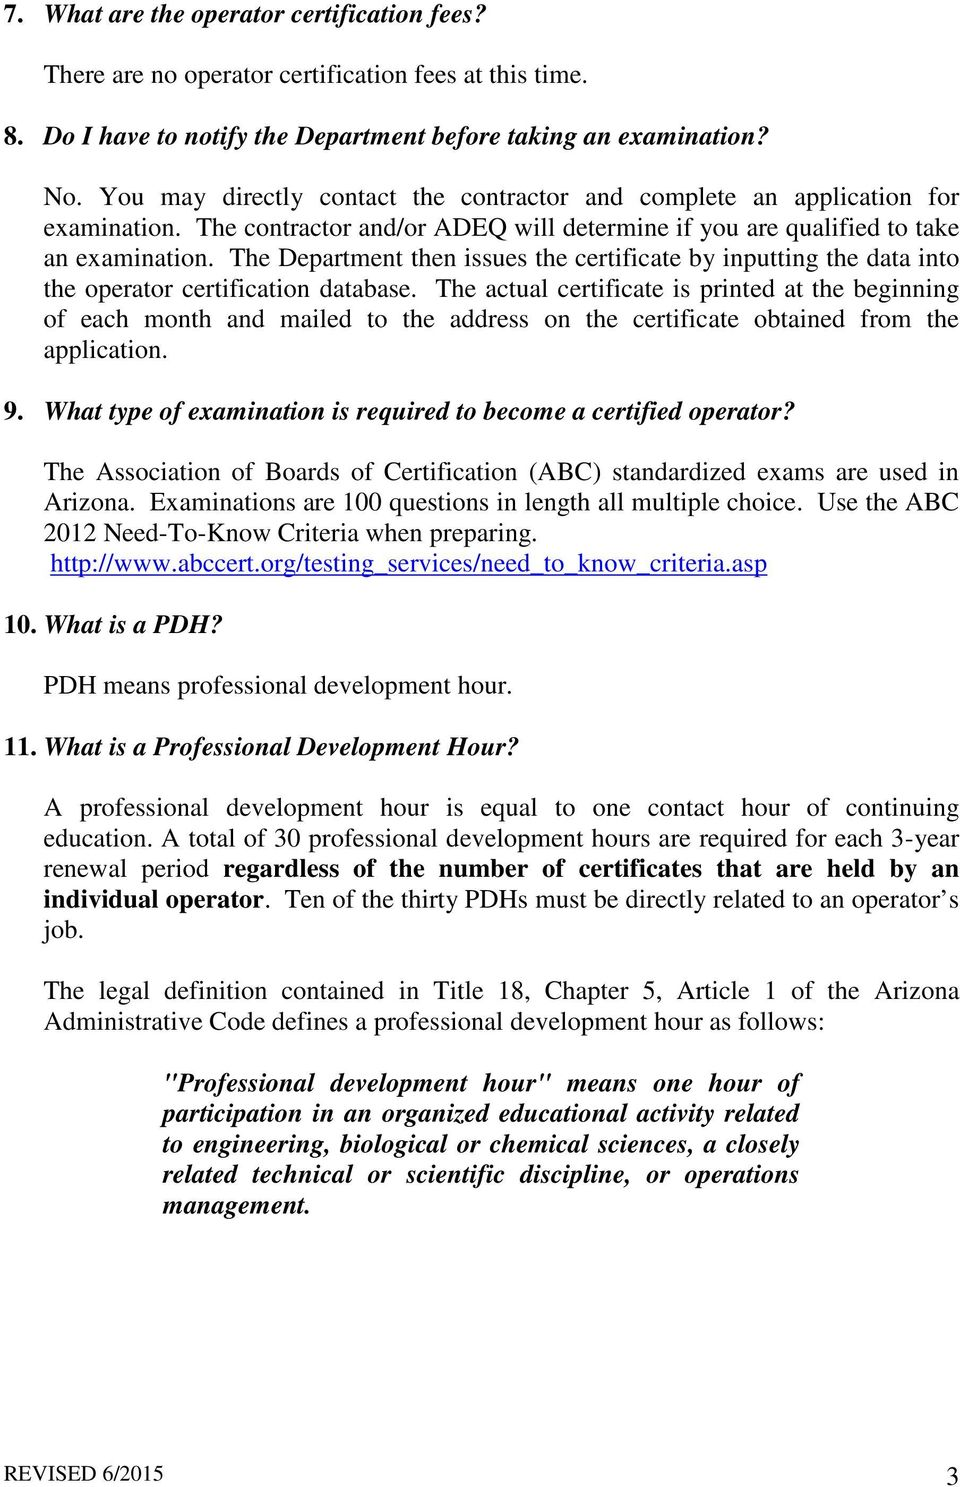 Frequently Asked Questions About The Operator Certification Program